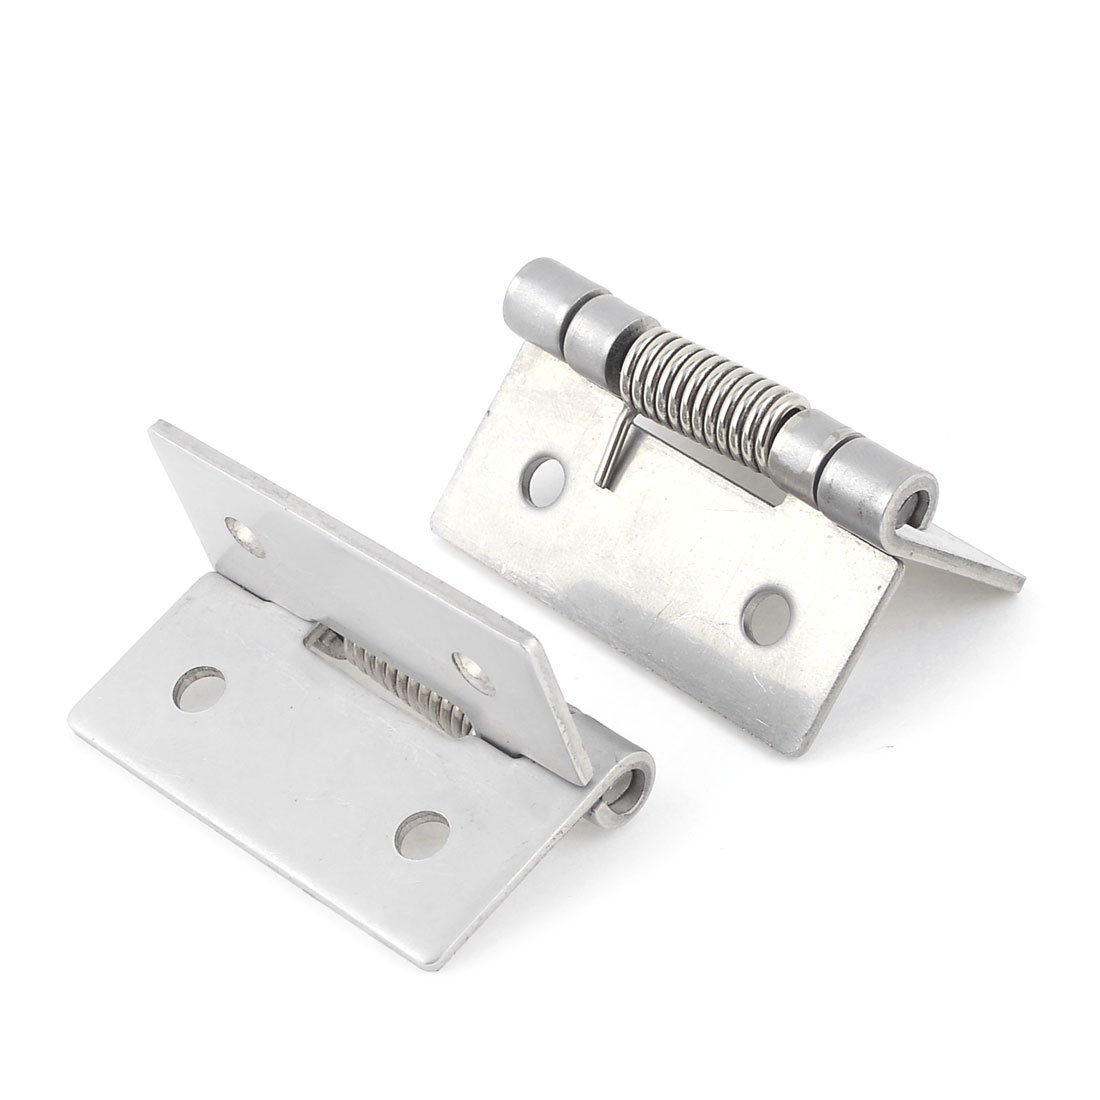 Cheap Spring Loaded Gate Hinges Find Spring Loaded Gate Hinges